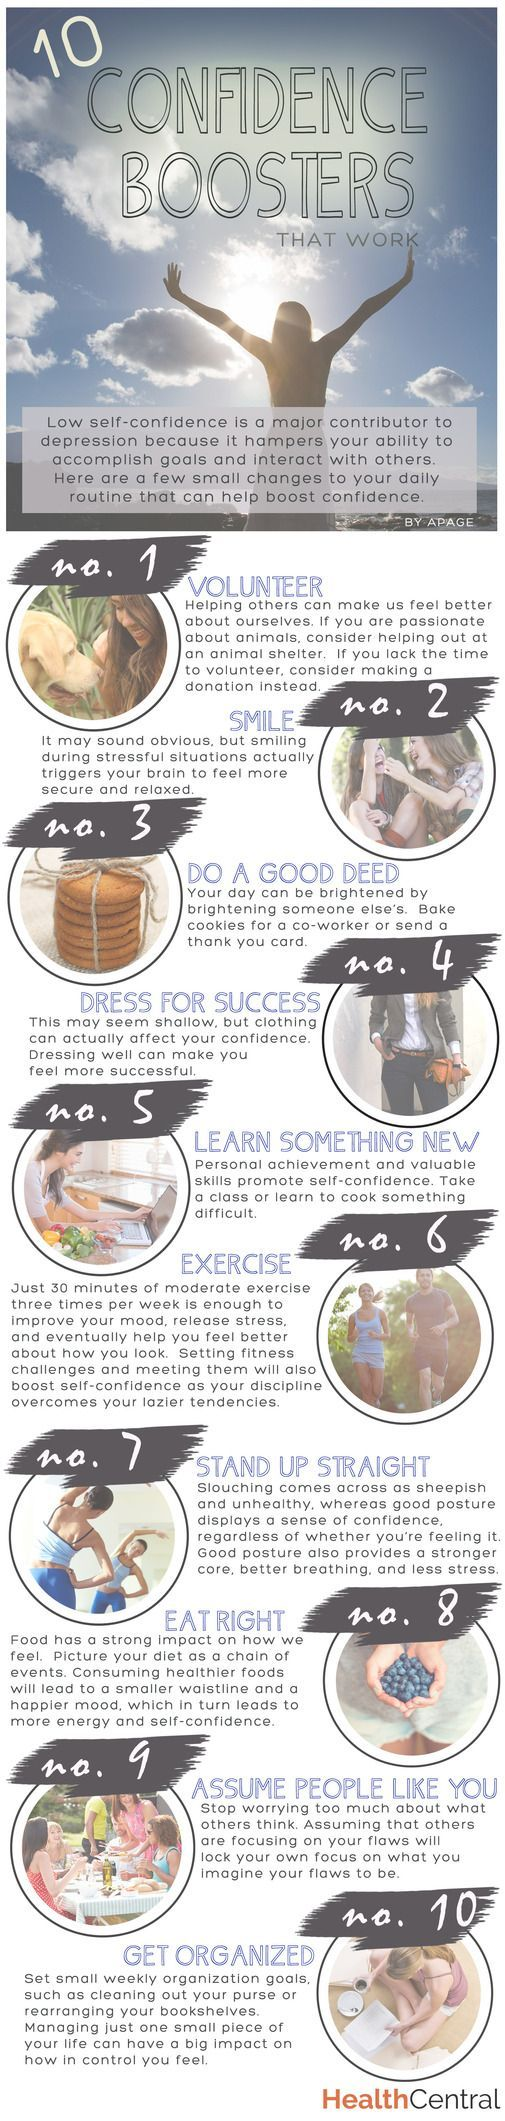 10 Confidence Boosters That Work (INFOGRAPHIC) - See more at: http://www.healthcentral.com/depression/c/458275/167445/confidence-infographic?ic=6030#sthash.O0Vy6Vdn.dpuf self esteem tips, self love